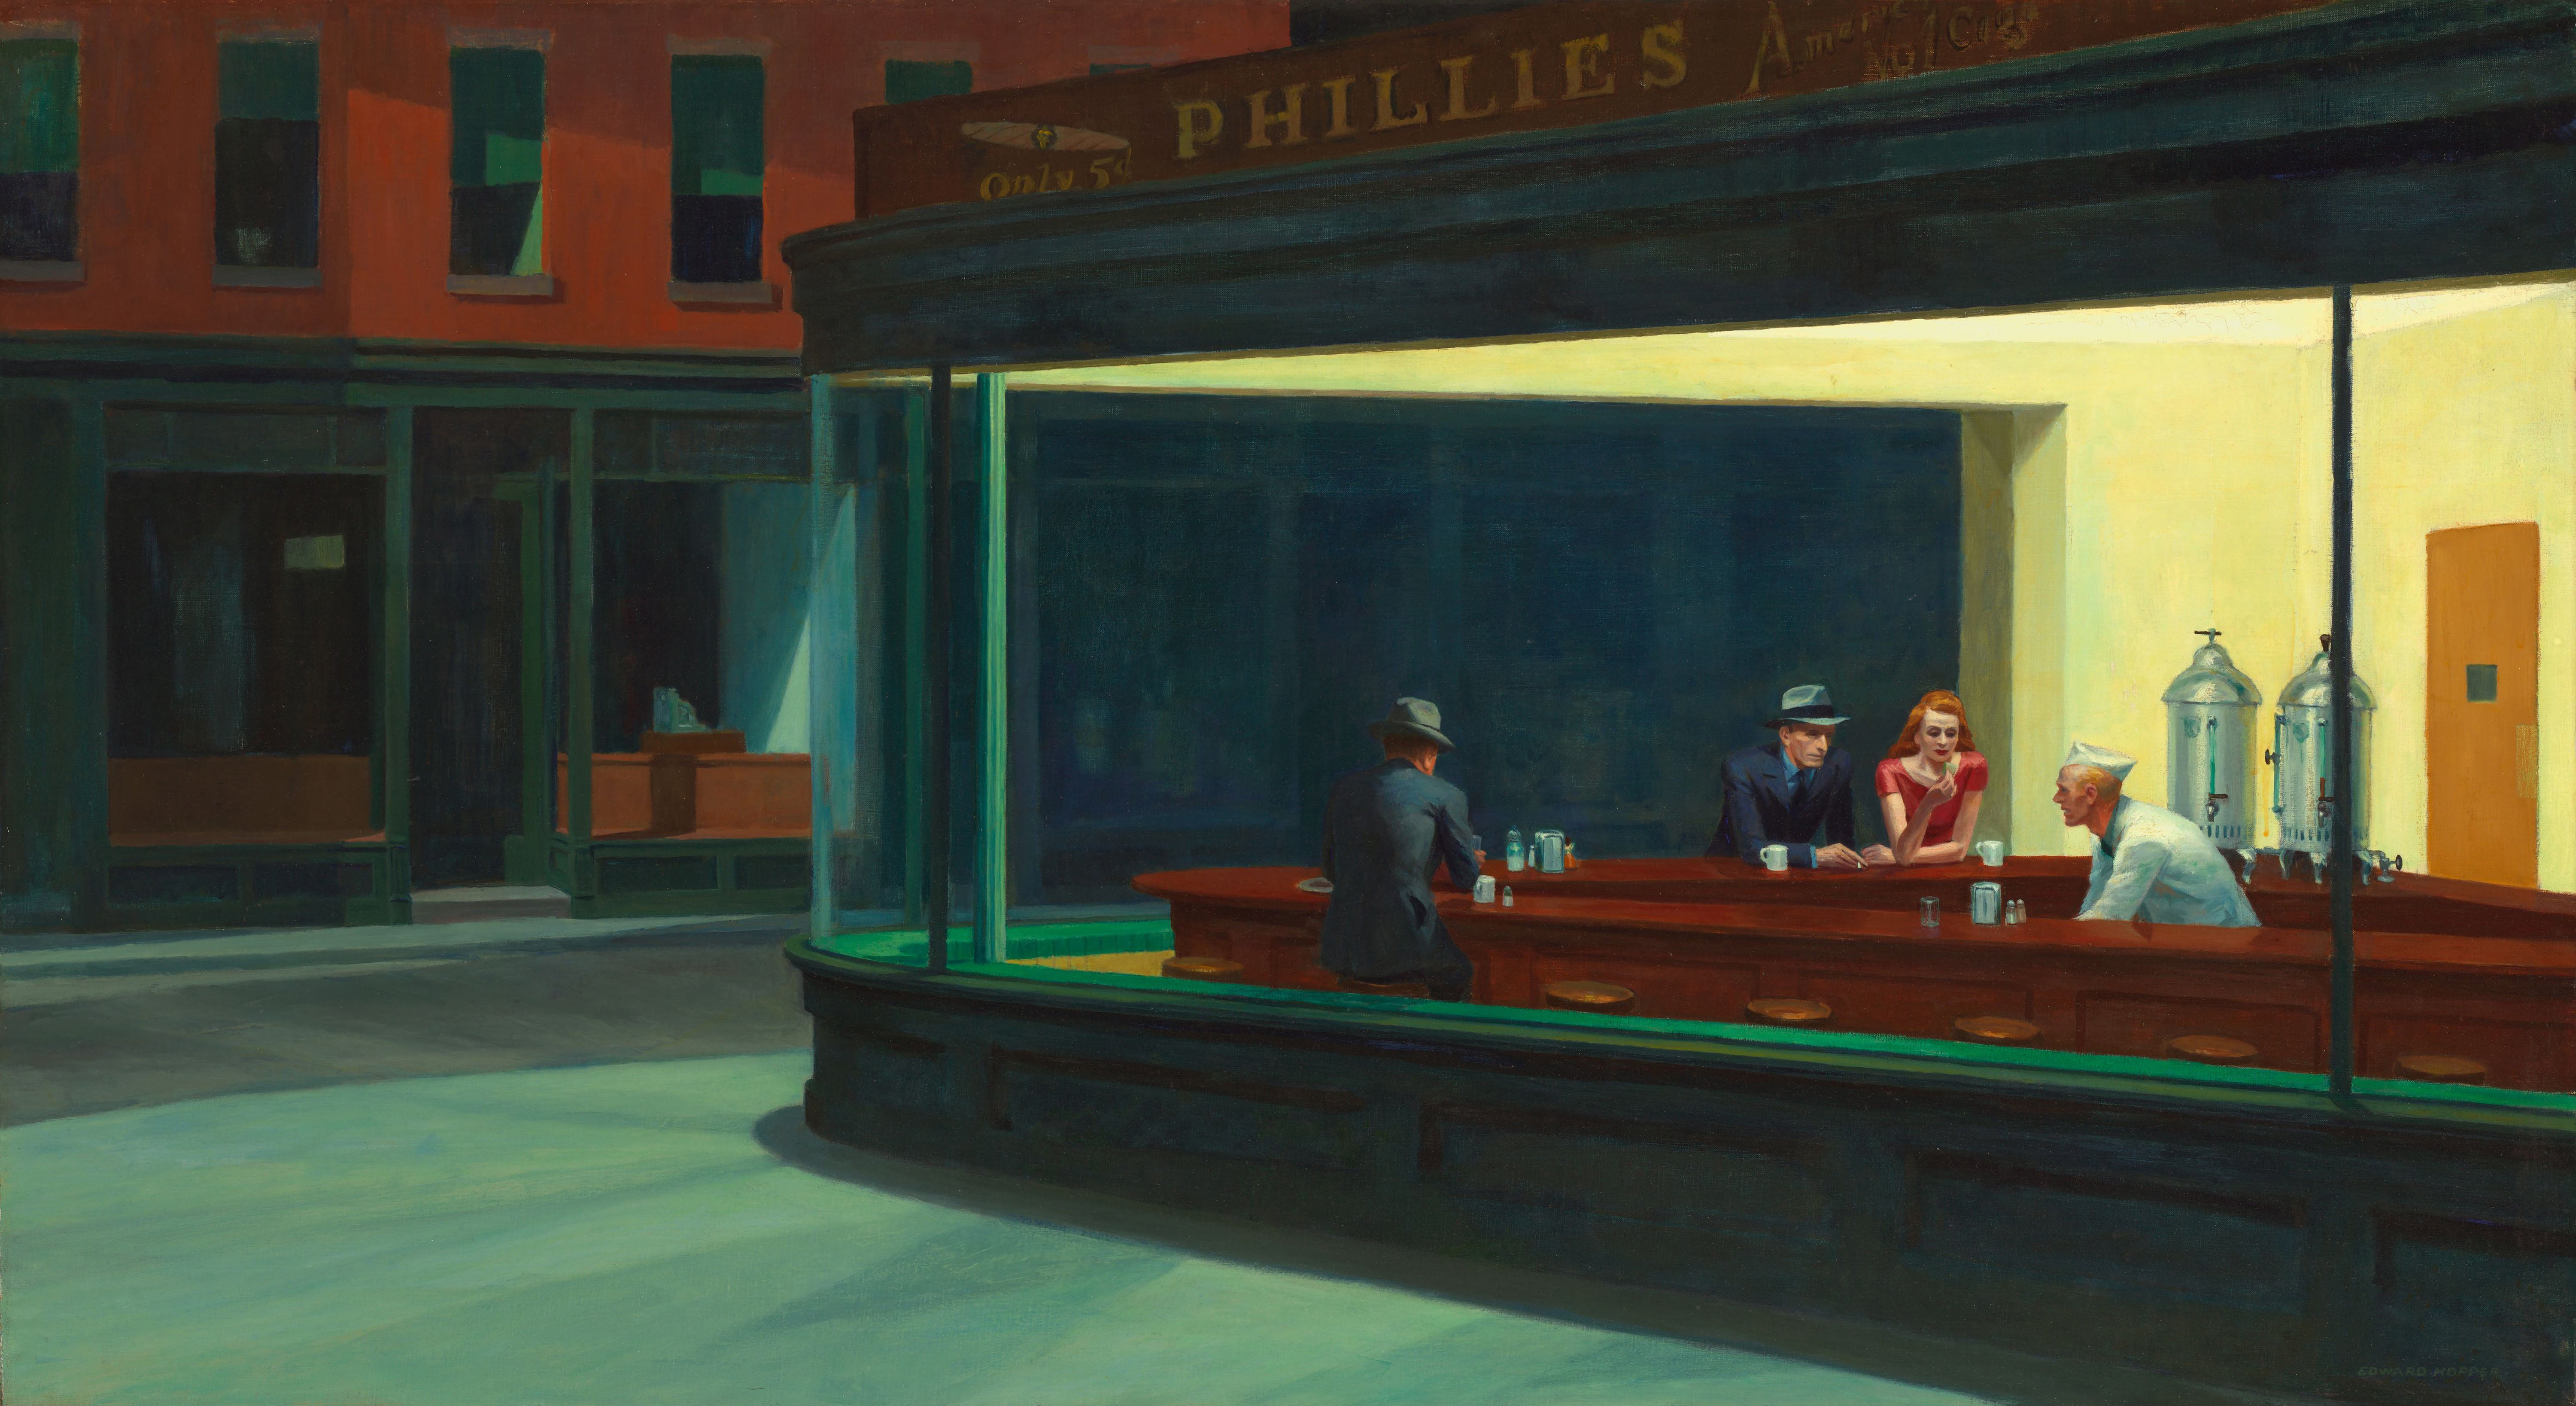 https://www.kazoart.com/blog/wp-content/uploads/2017/06/Edward-hopper-nighthawks.jpg